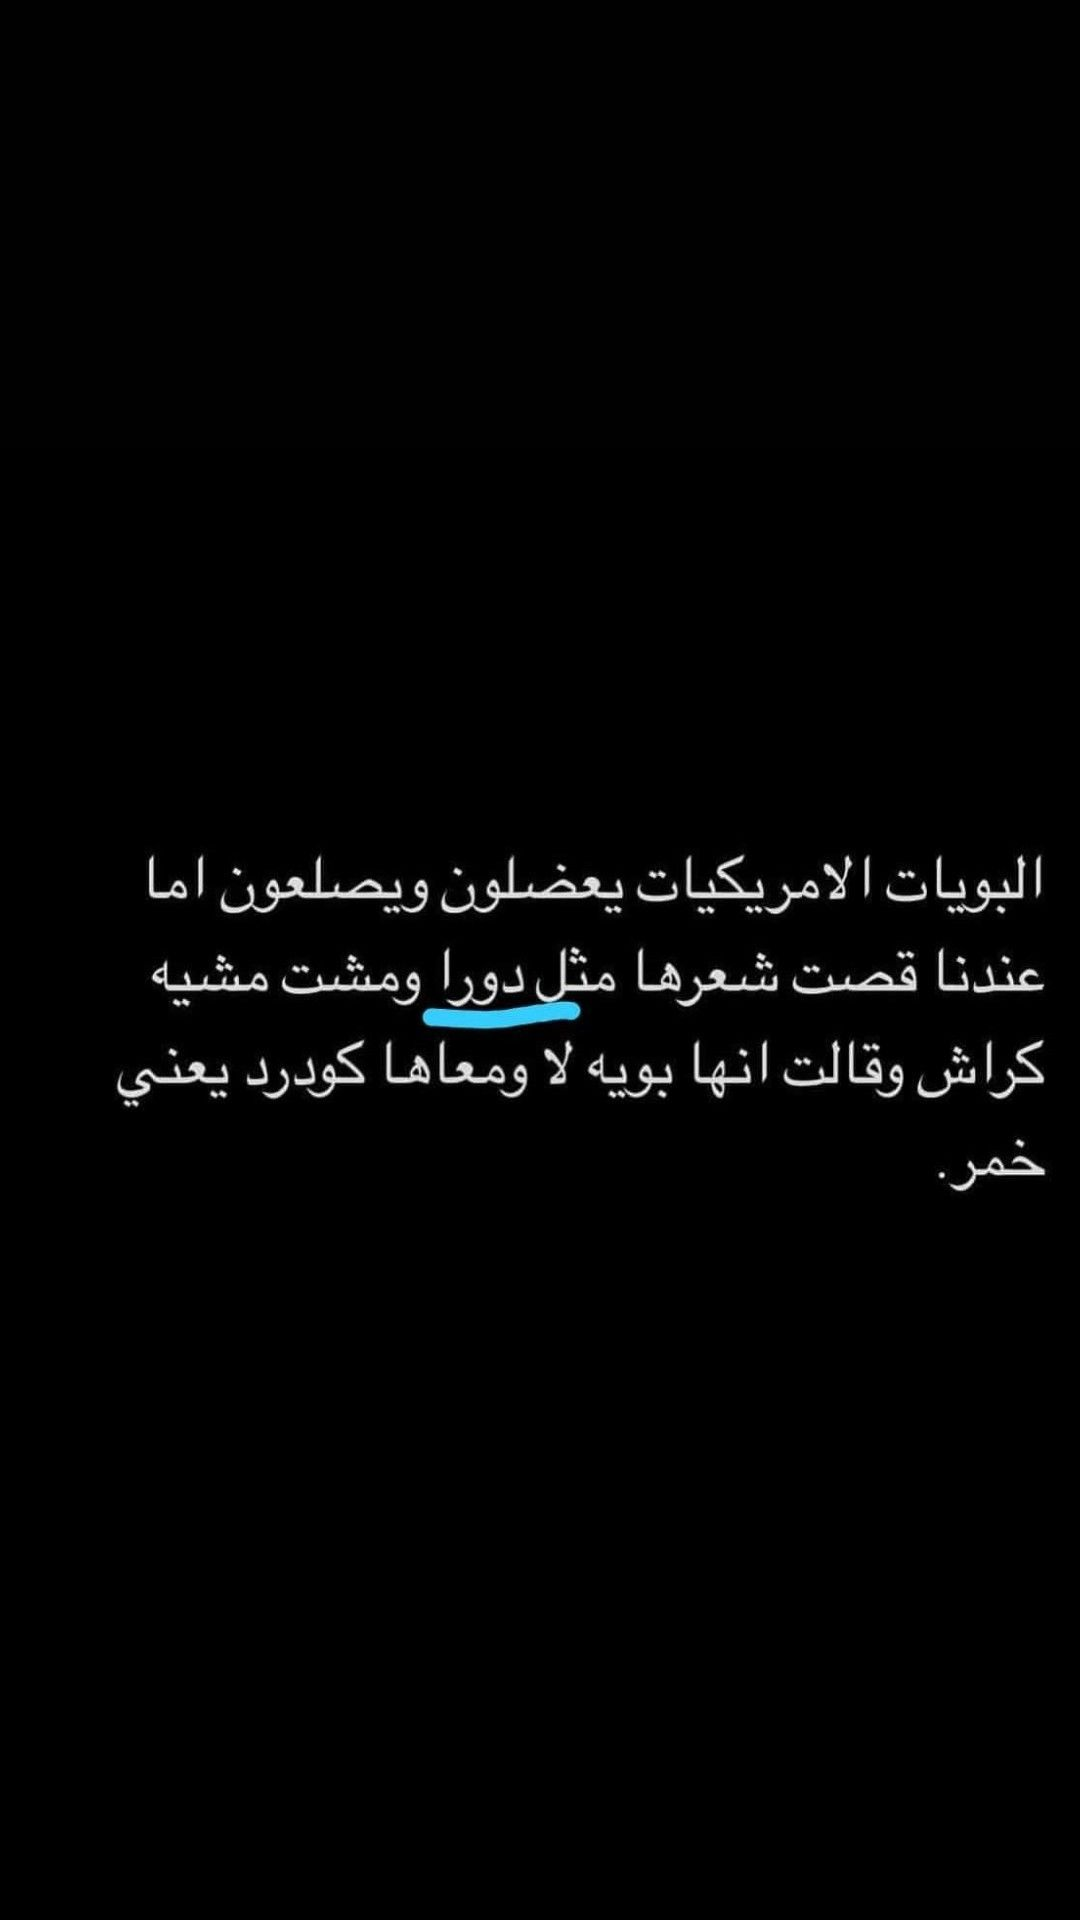 هههههههههههههههههههههههههههههههههههههههههههههههههههههههههههههههههههههههههههههههههههه Jokes Quotes Funny Words Talking Quotes